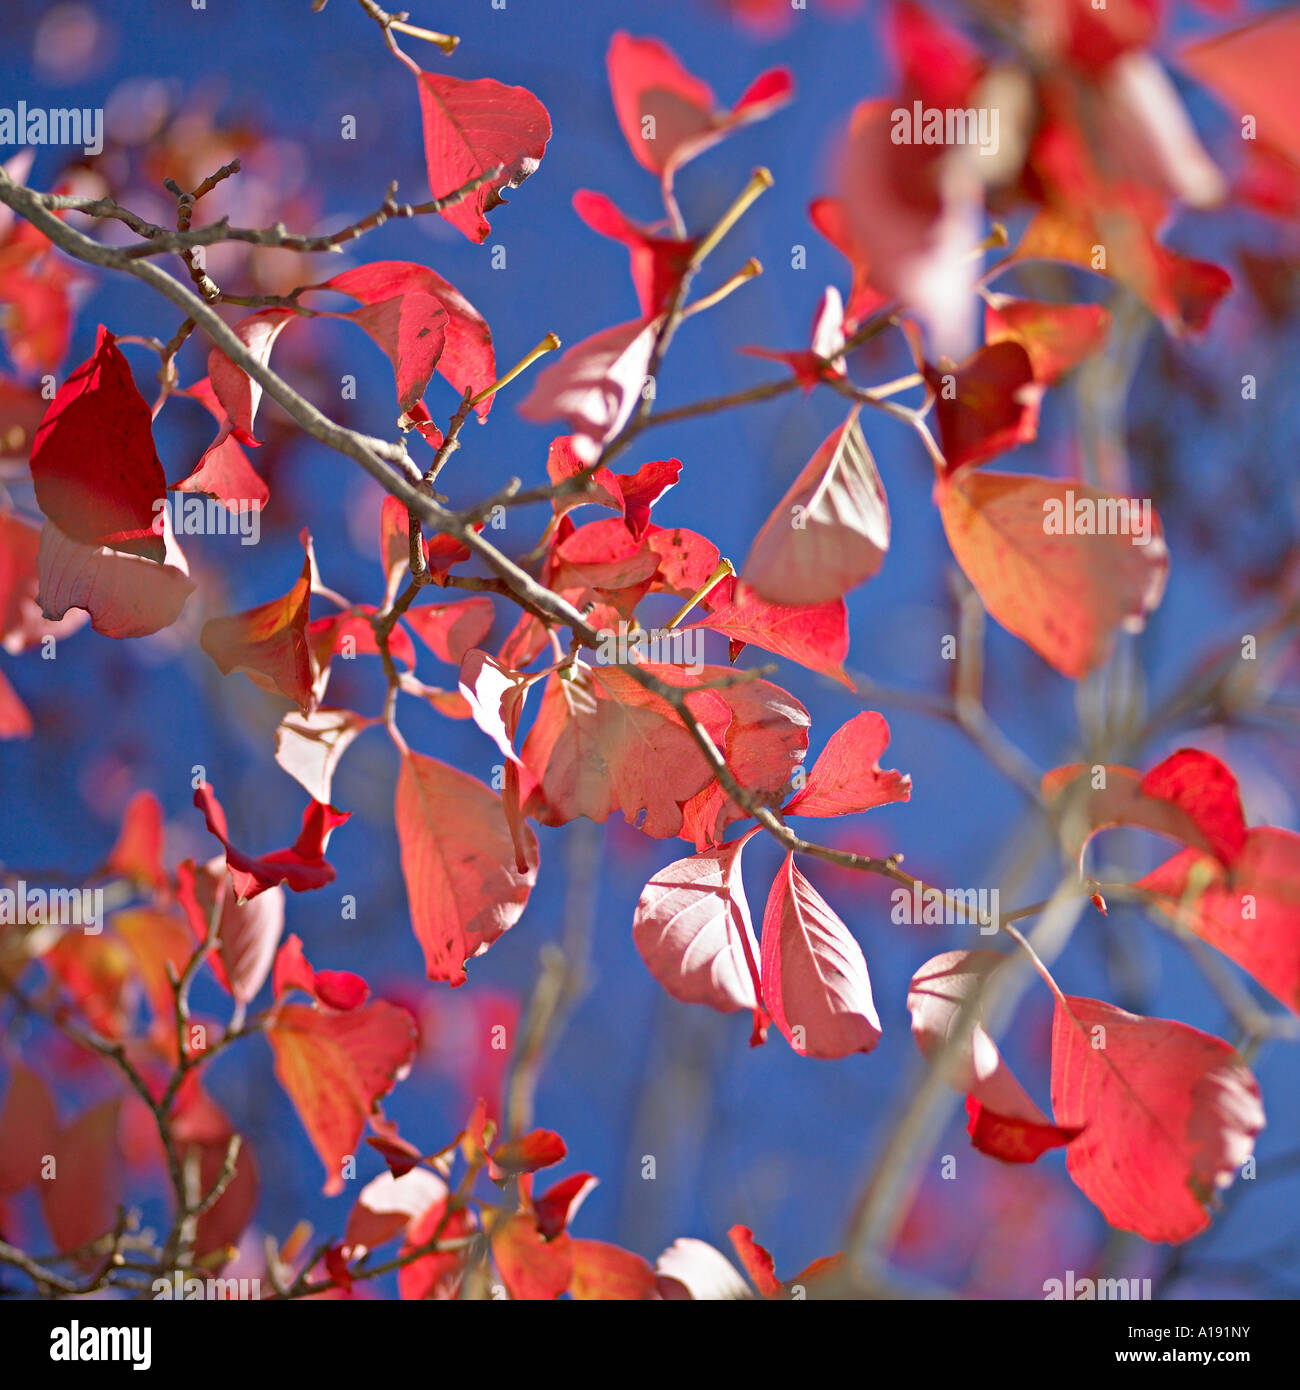 Tree branches with red leaves against blue sky - Stock Image